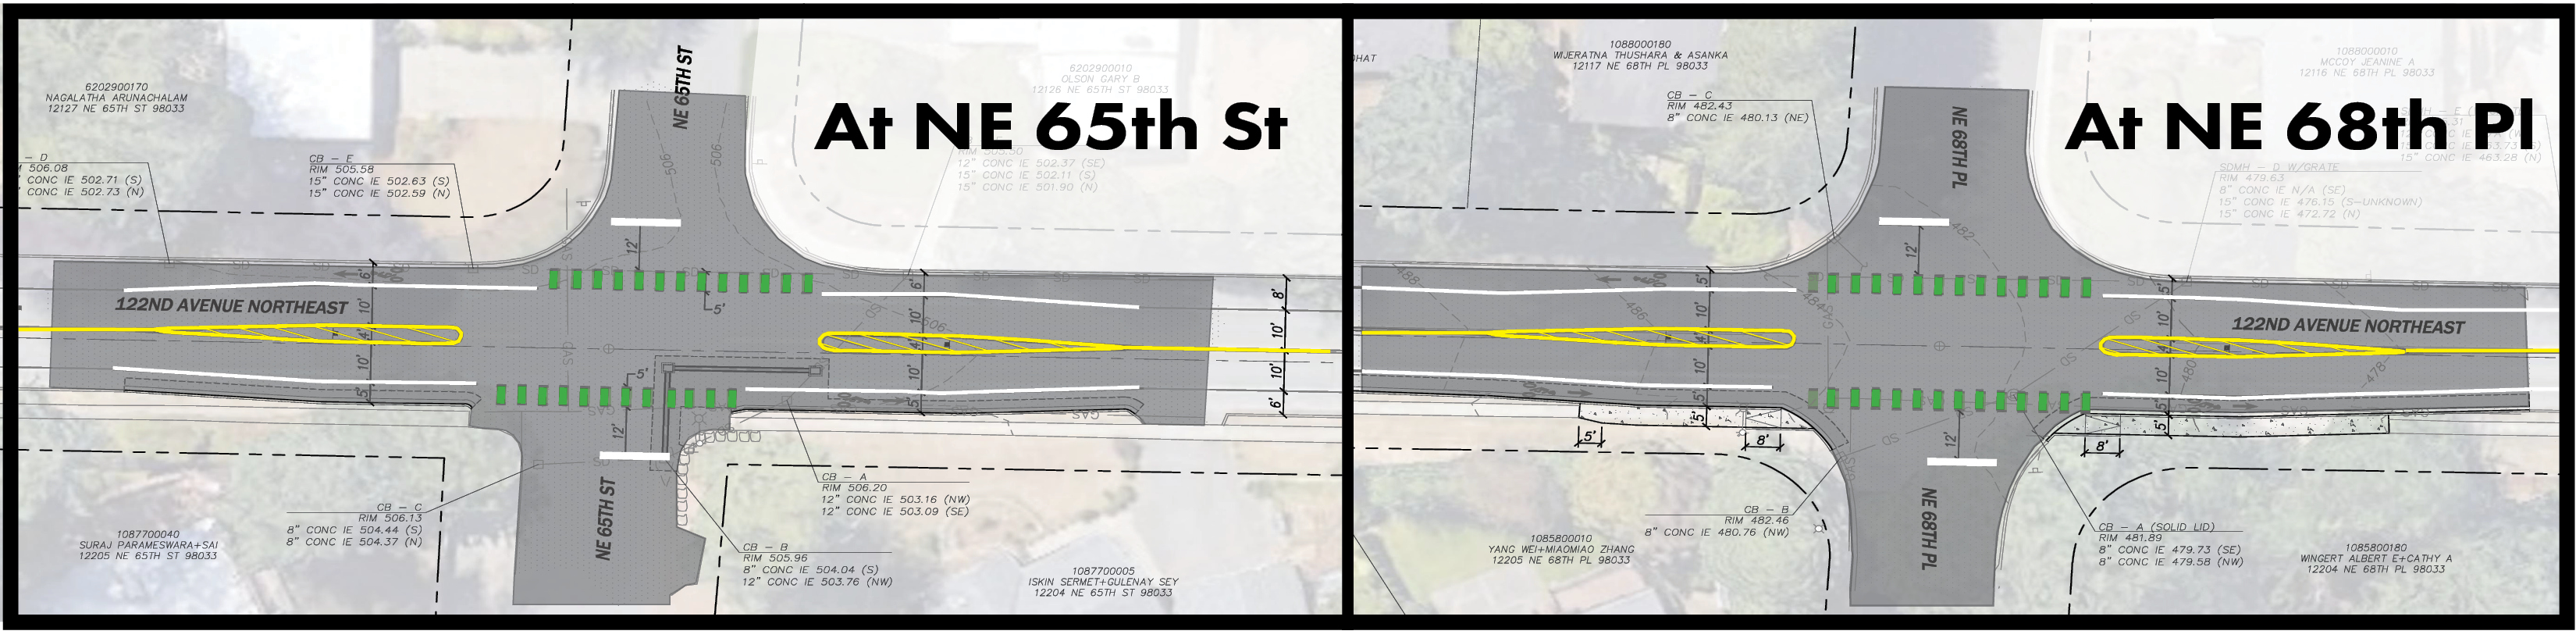 MAP of 122nd Ave NE plan